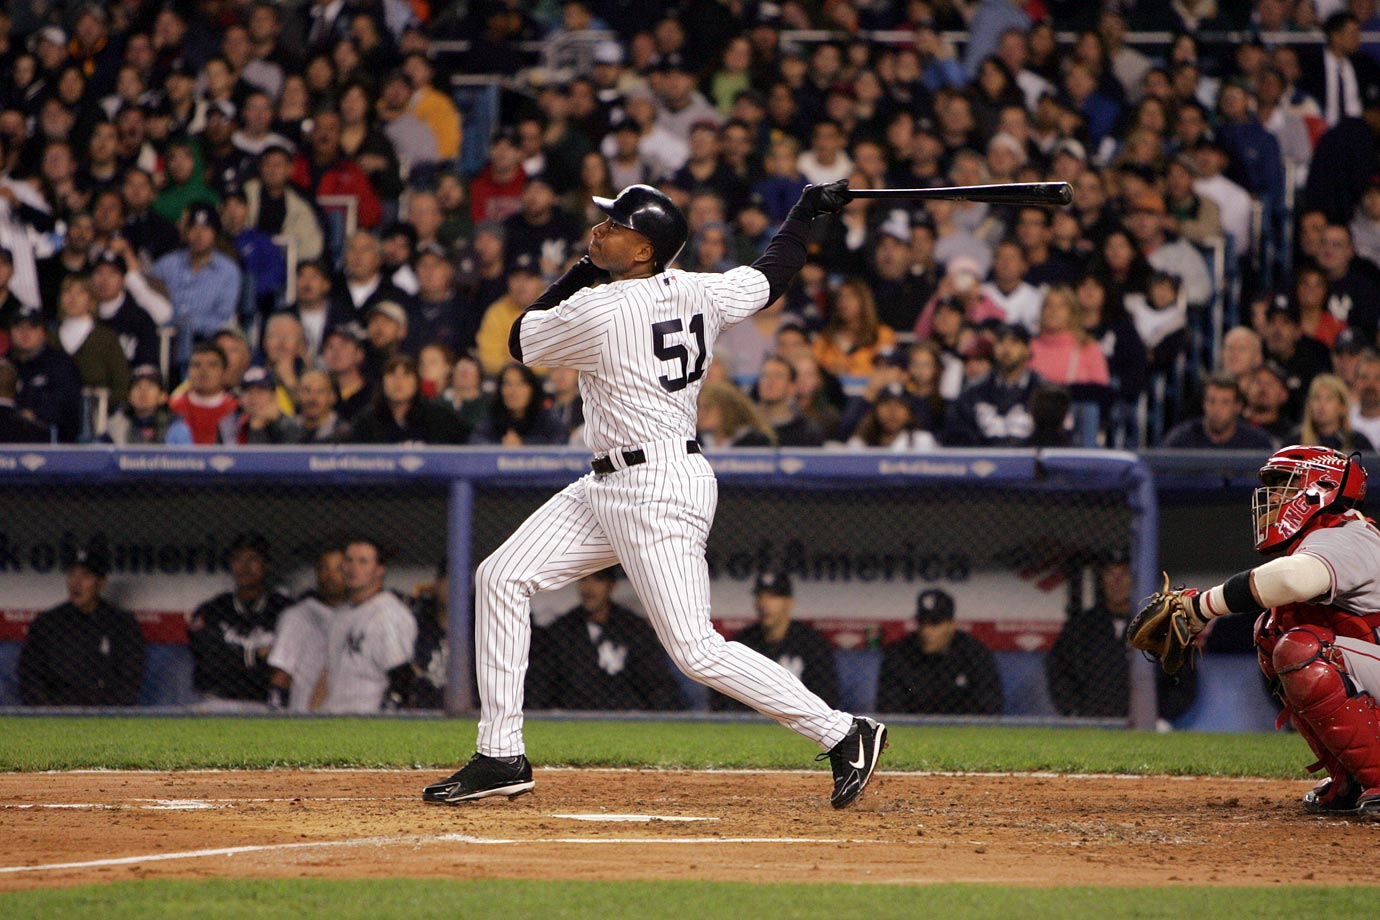 Williams, who played his entire 16-year career in pinstripes, was arguably the best player on New York's teams that won five American League pennants and four World Series championships from 1996-2001. He hit .302/.392/487 with 18 homers in 1995 while helping the Yankees back to the postseason, the first year of an eight-year stretch across which he hit .321/.406/.531 while averaging 24 homers. During that span, Williams won the 1998 AL batting title, made five straight All-Star teams (1997-2001) and won four Gold Gloves.